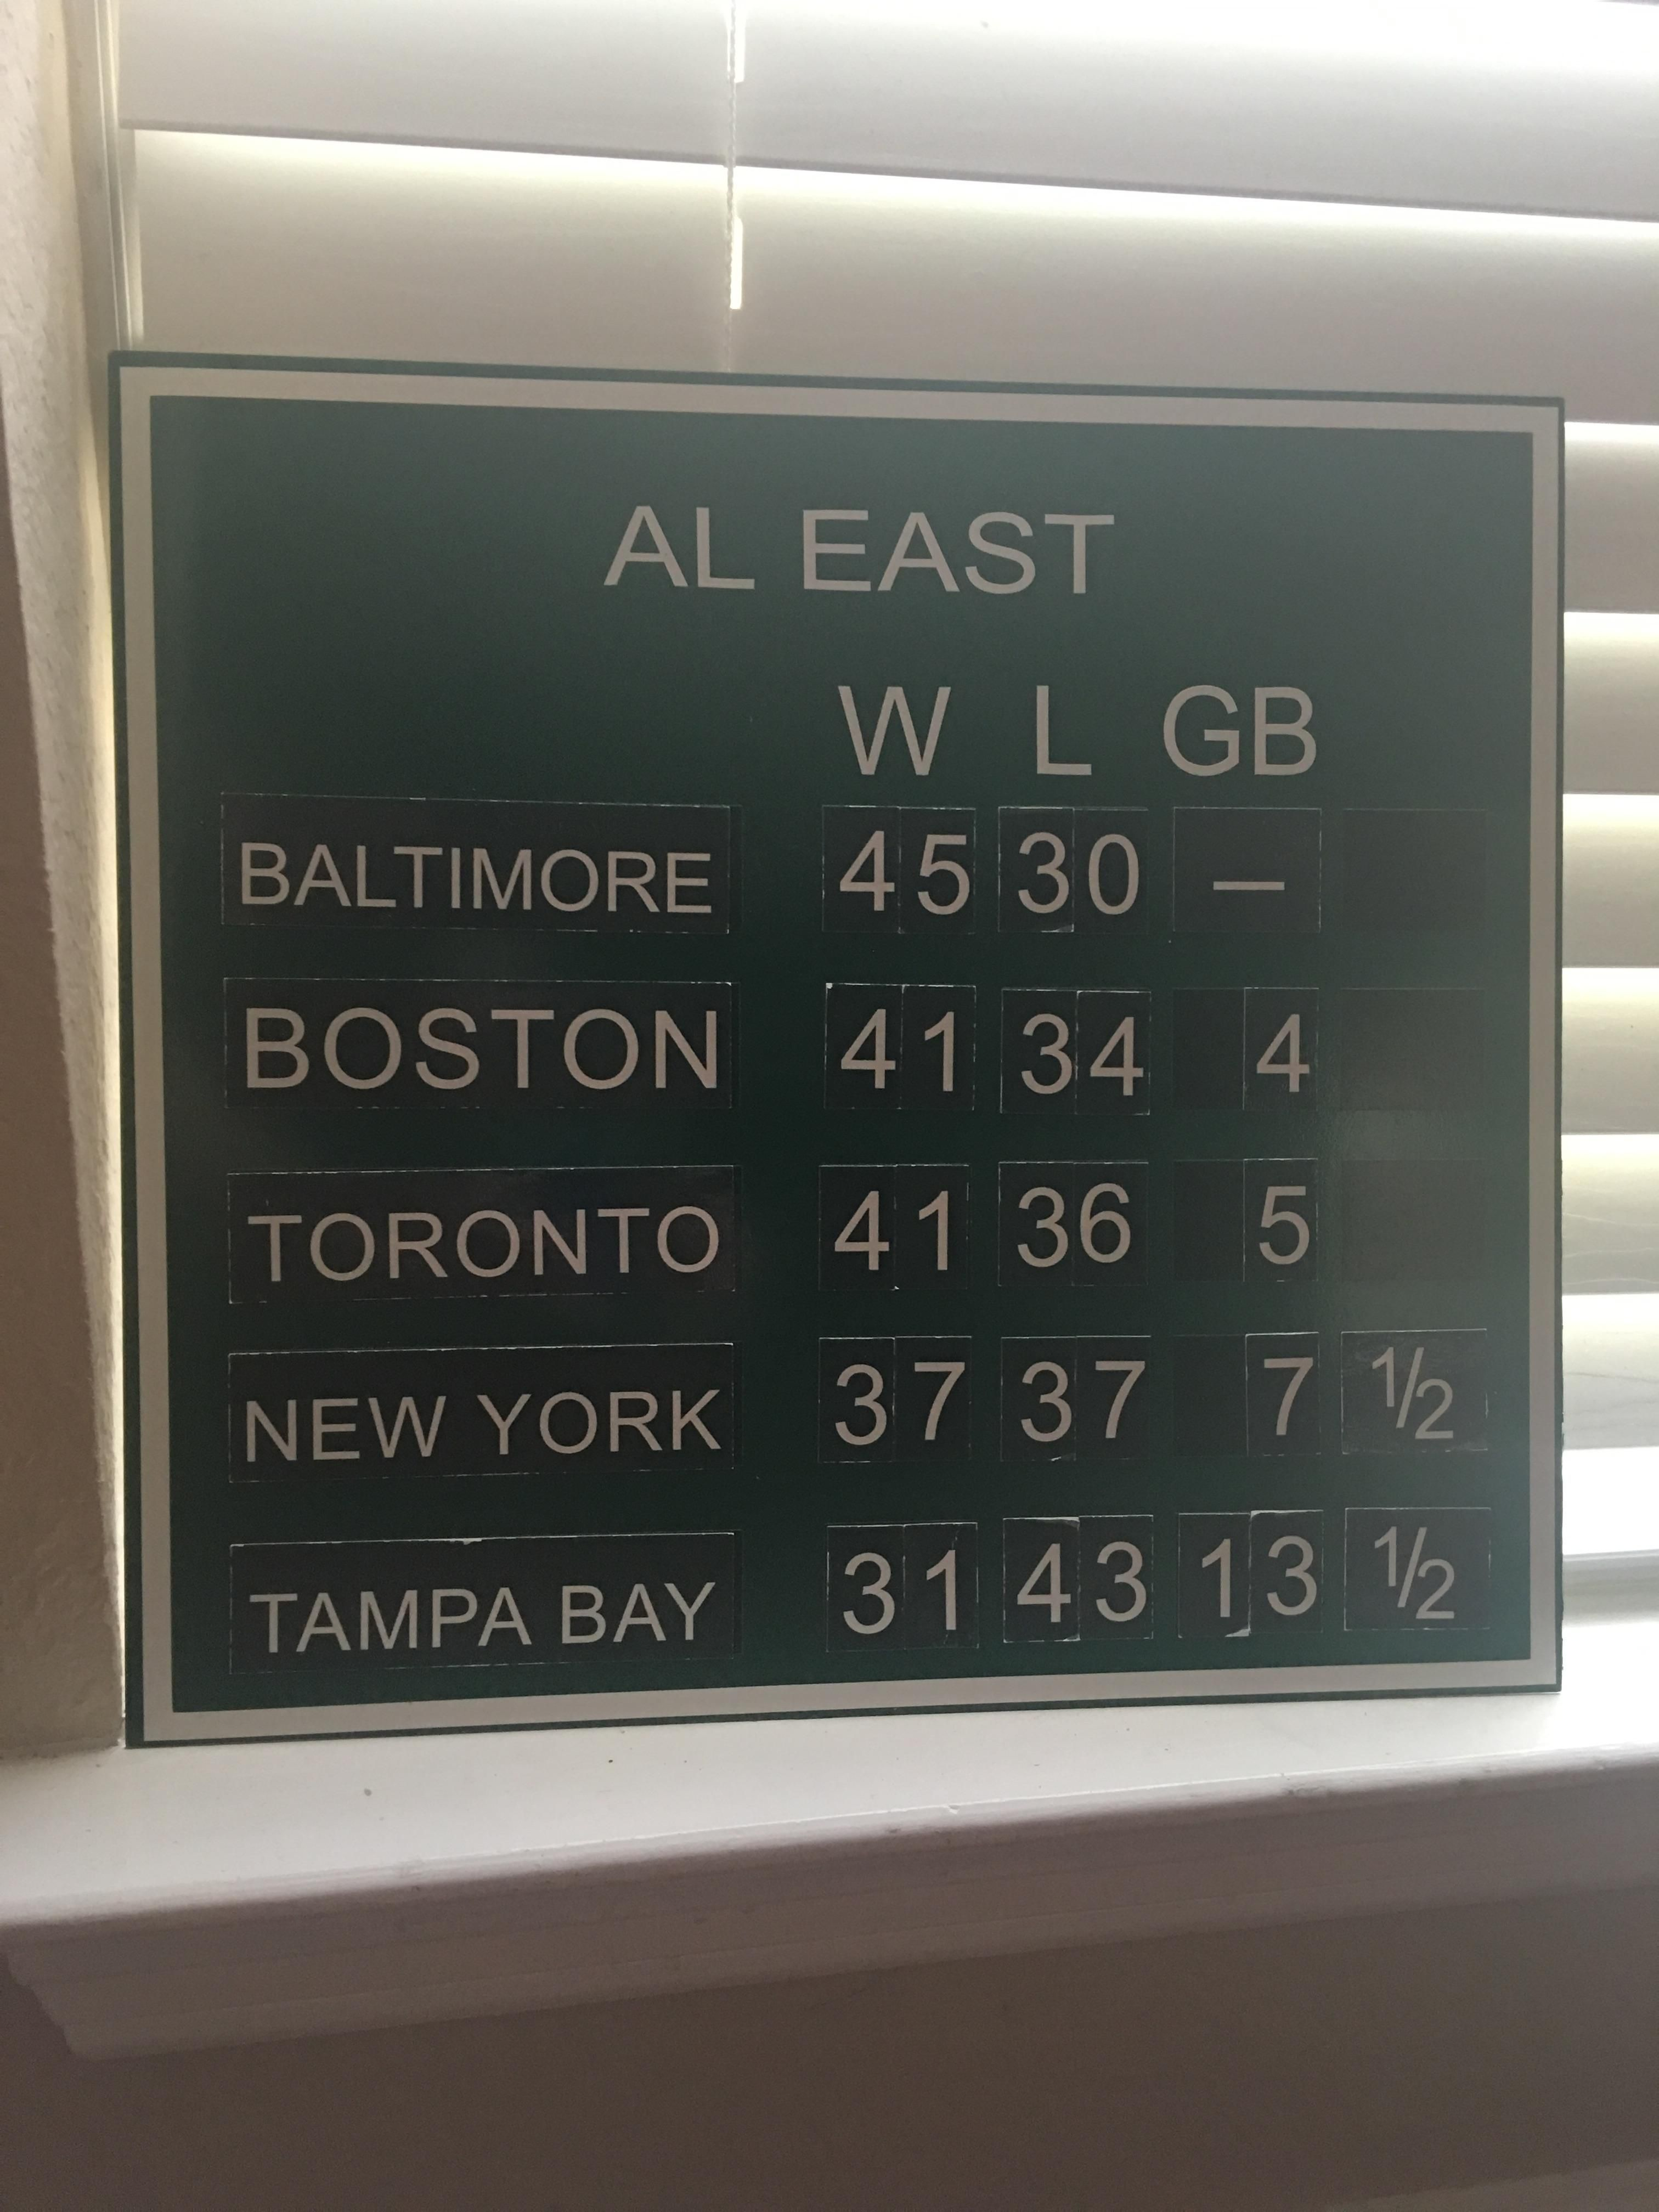 These Amazing Homemade Standings Boards Are The Newest Trend In Baseball Diy Mlb Standings Baseball Mlb